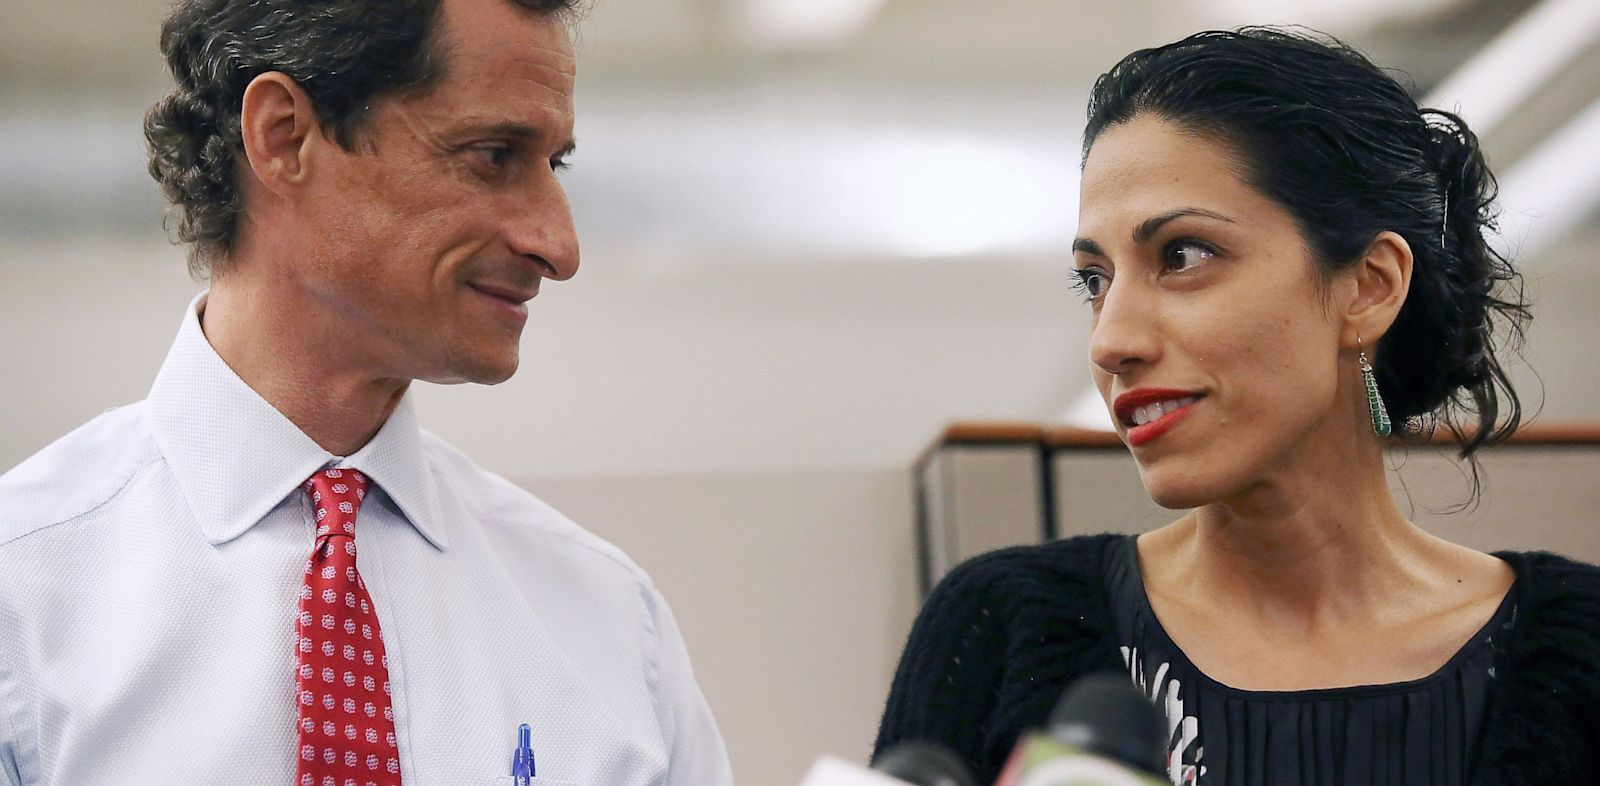 PHOTO: Huma Abedin and Anthony Weiner at press conference